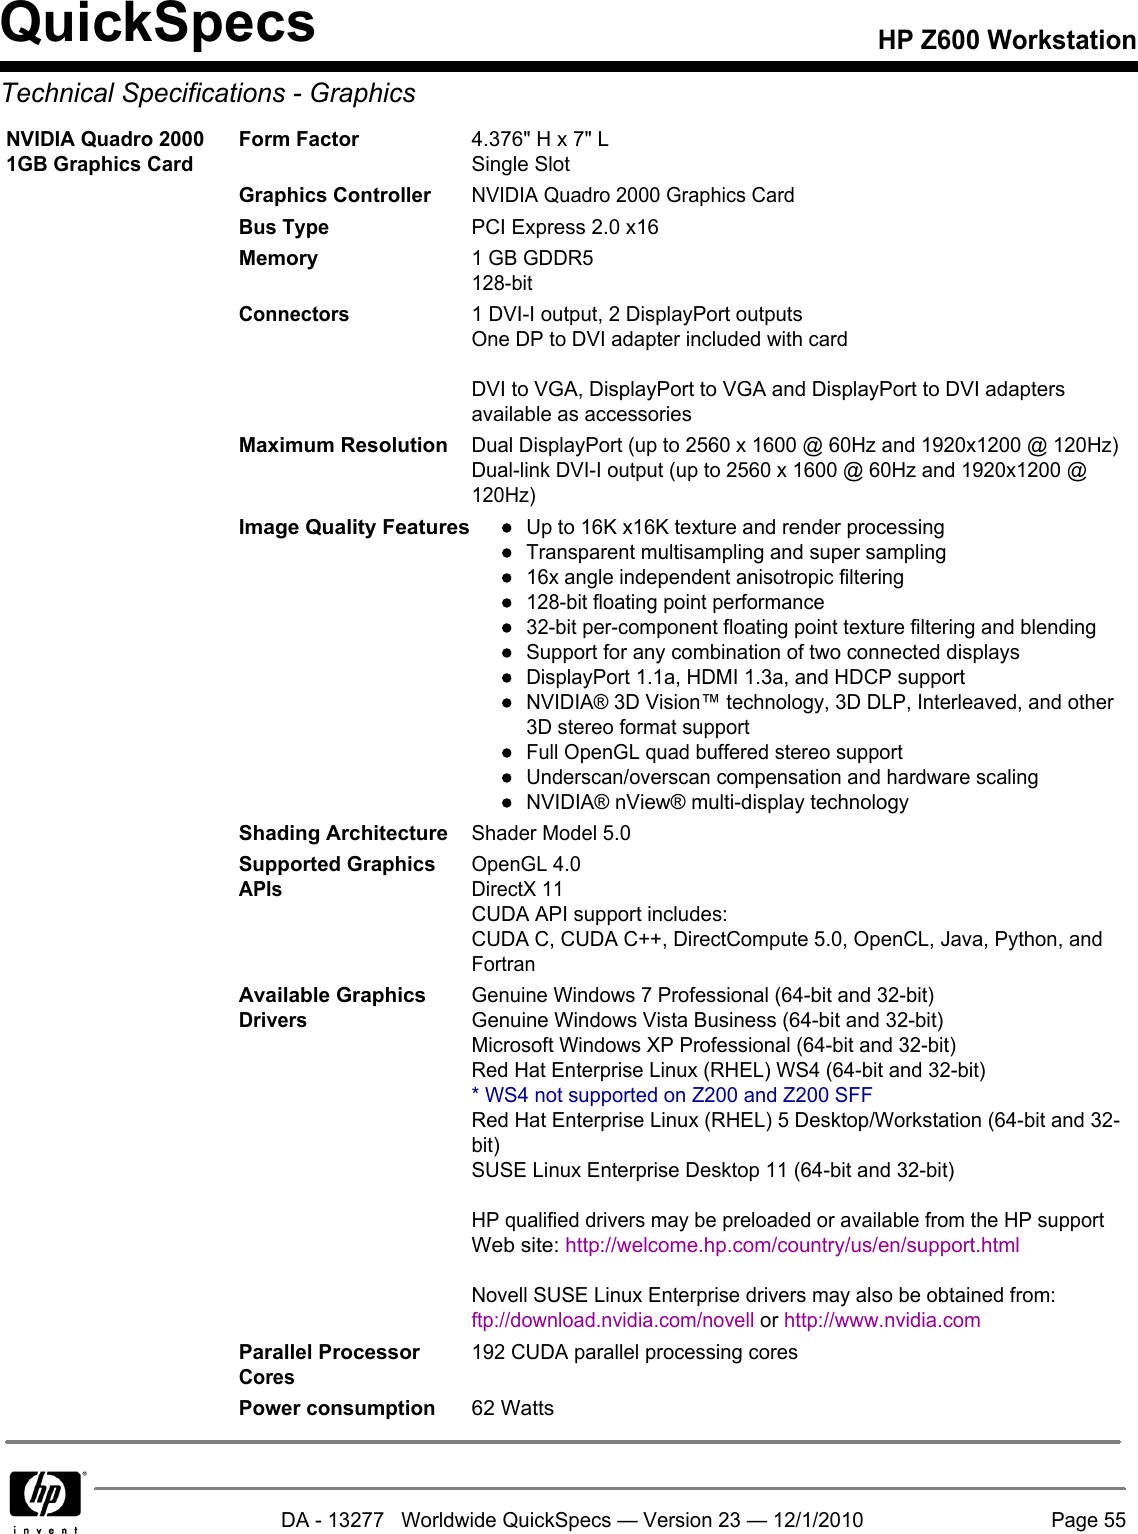 Hp Z600 Users Manual Workstation